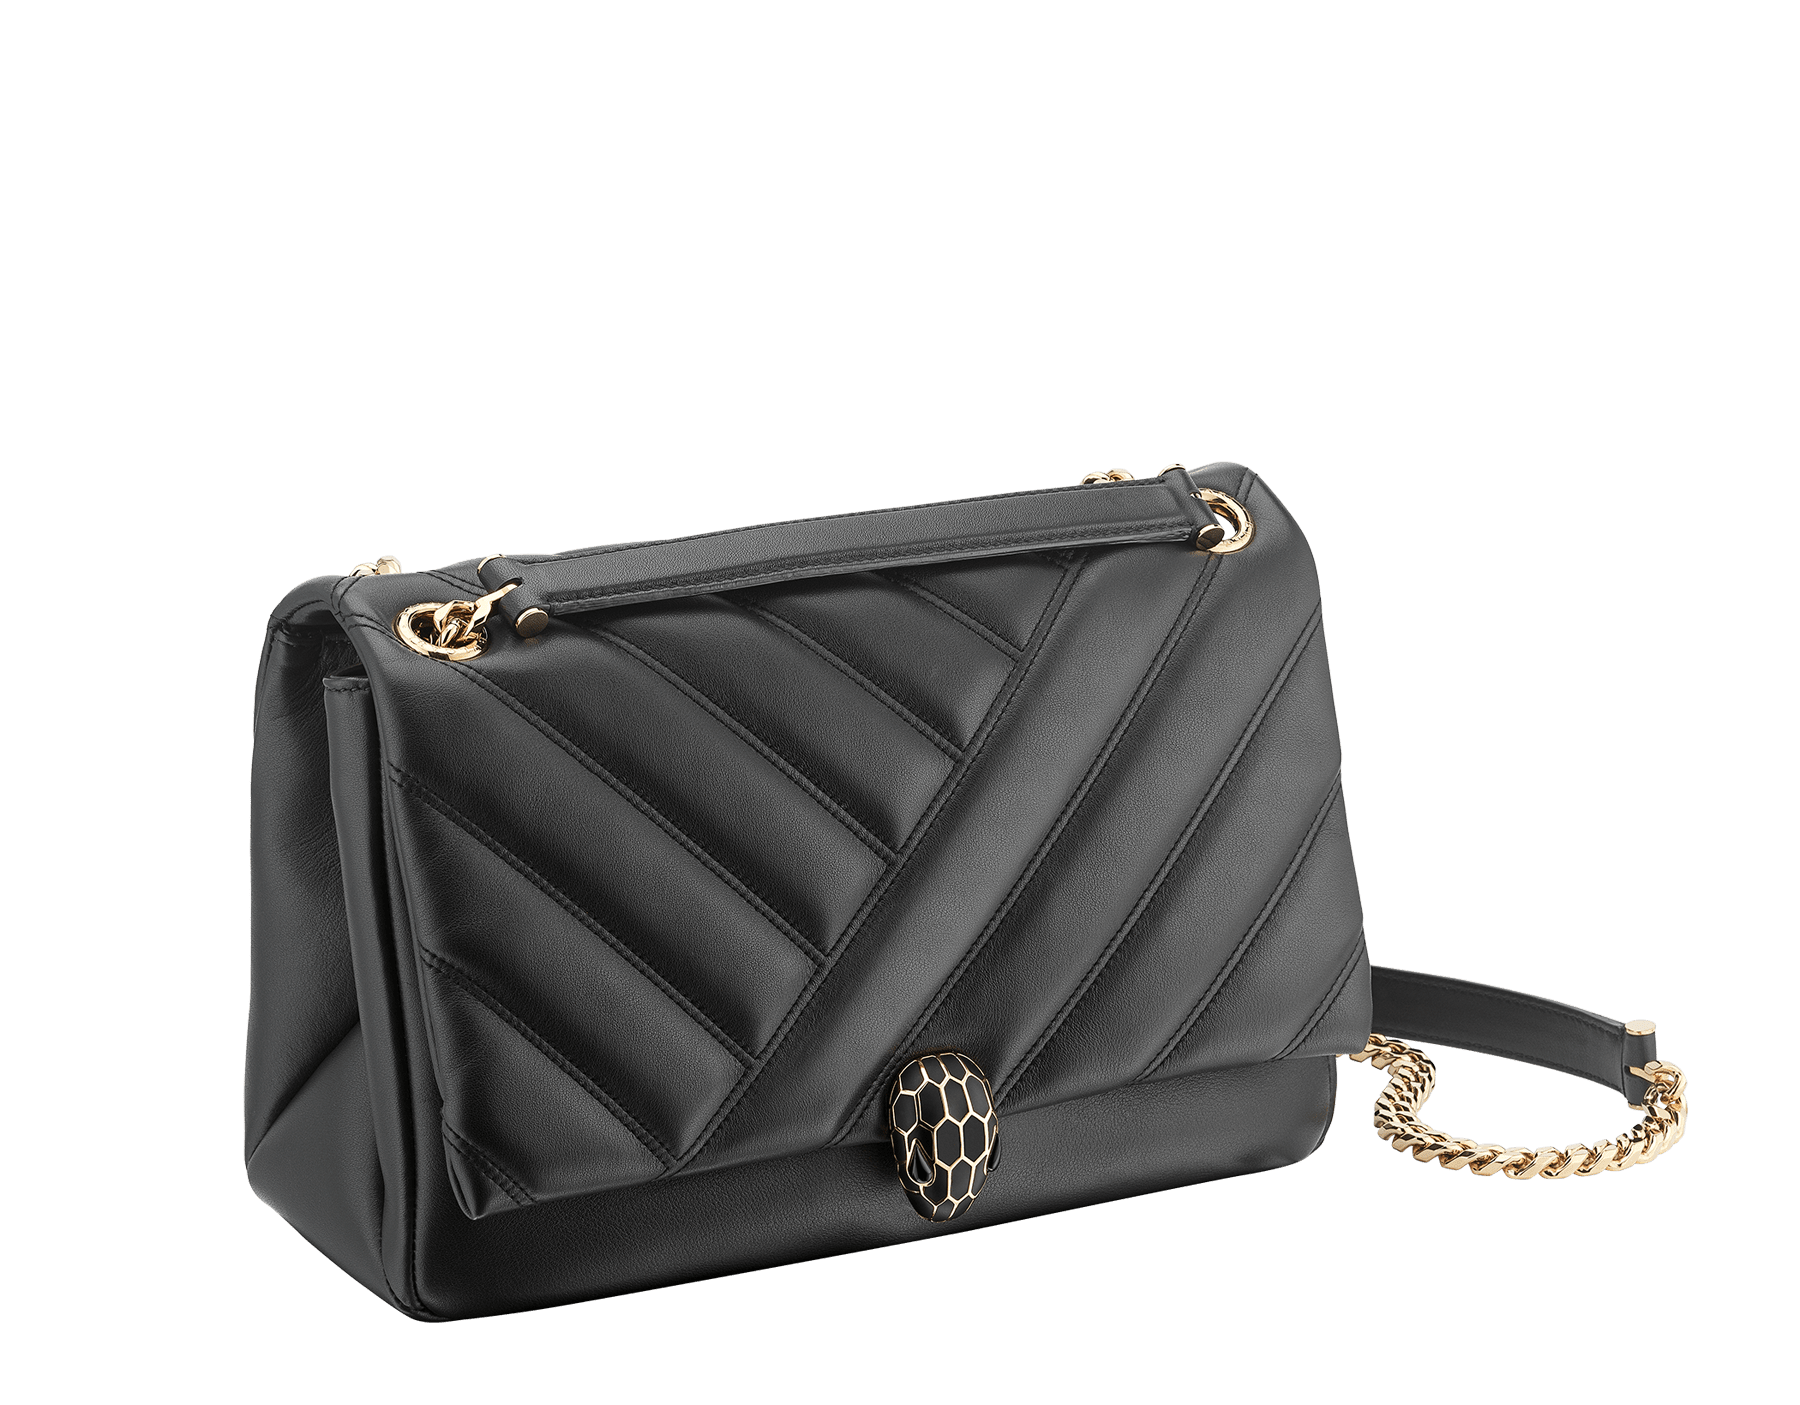 Serpenti Cabochon shoulder bag in soft matelassé white agate nappa leather with graphic motif and white agate calf leather. Snakehead closure in rose gold plated brass decorated with matte black and white enamel, and black onyx eyes. 979-NSM image 2